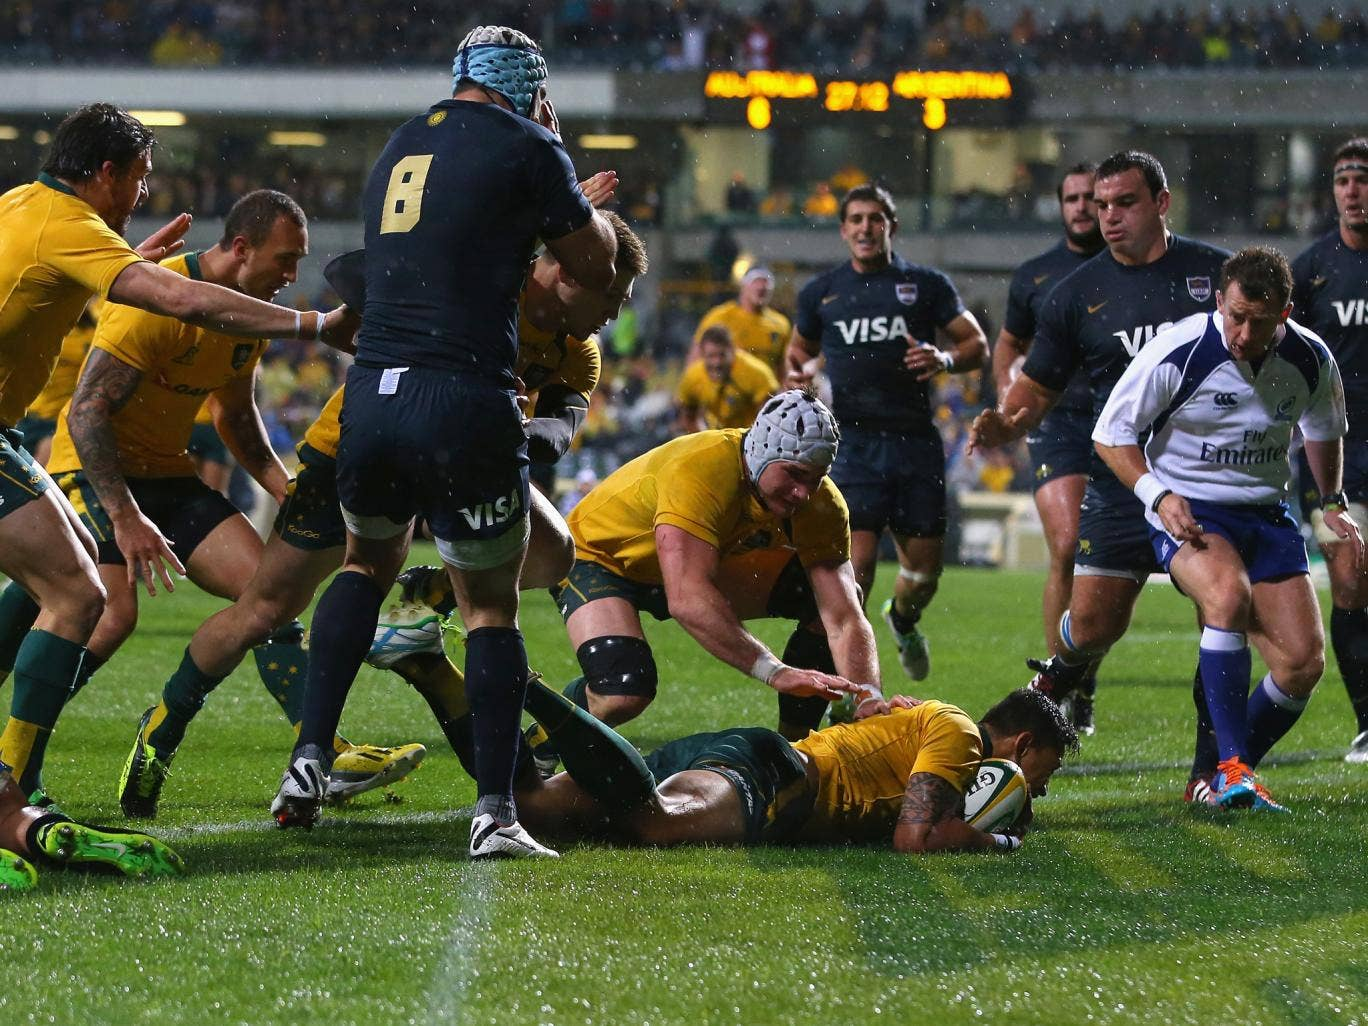 Israel Folau touches down for a try for Australia against Argentina